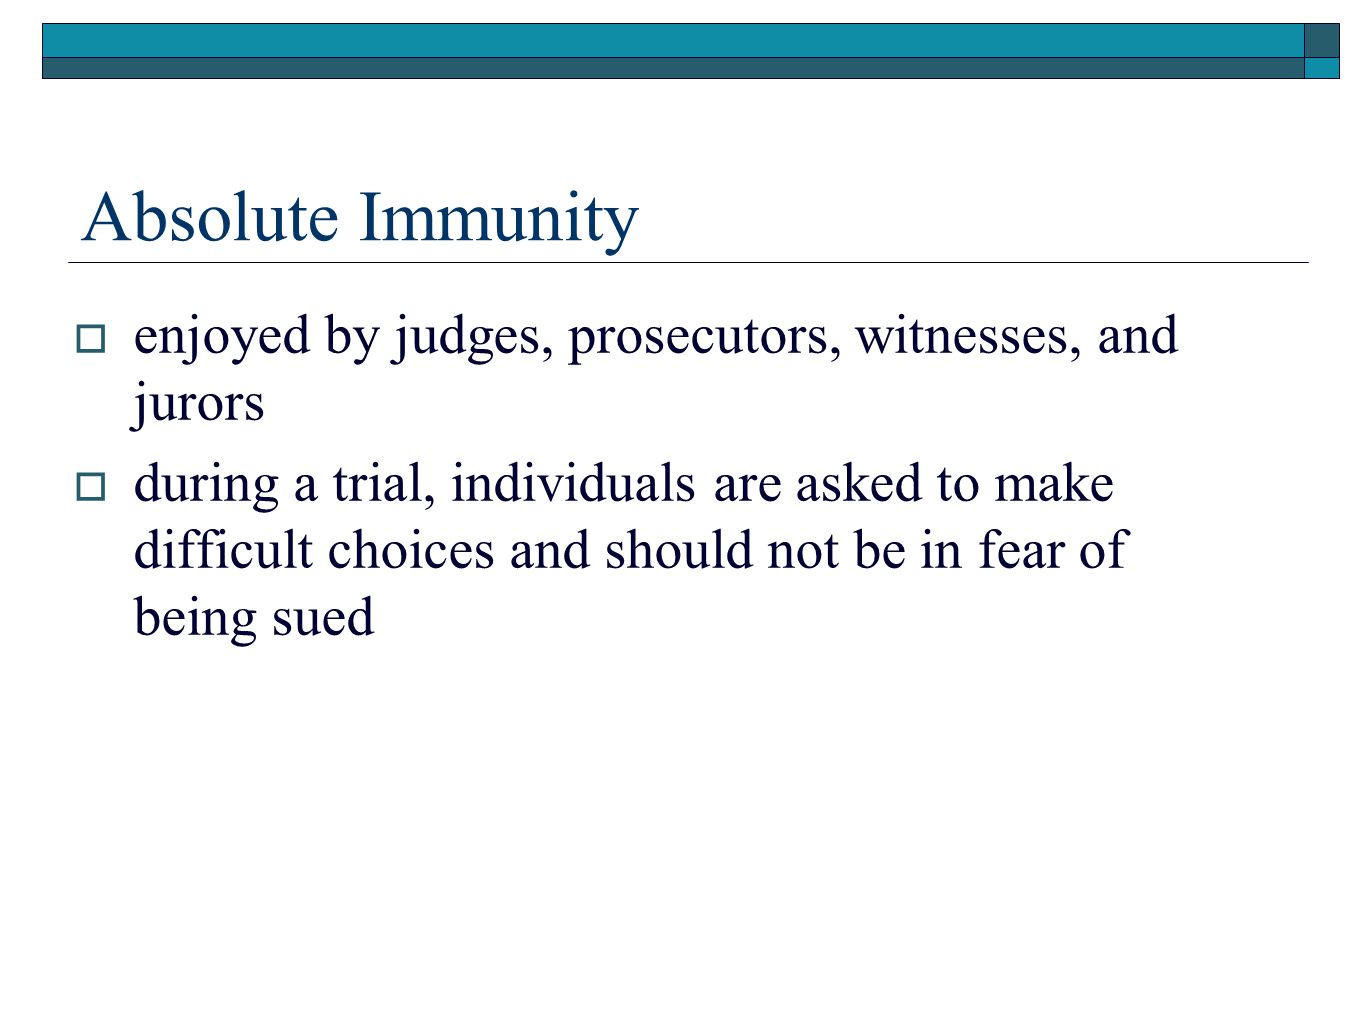 Absolute Immunity enjoyed by judges, prosecutors, witnesses, and jurors.